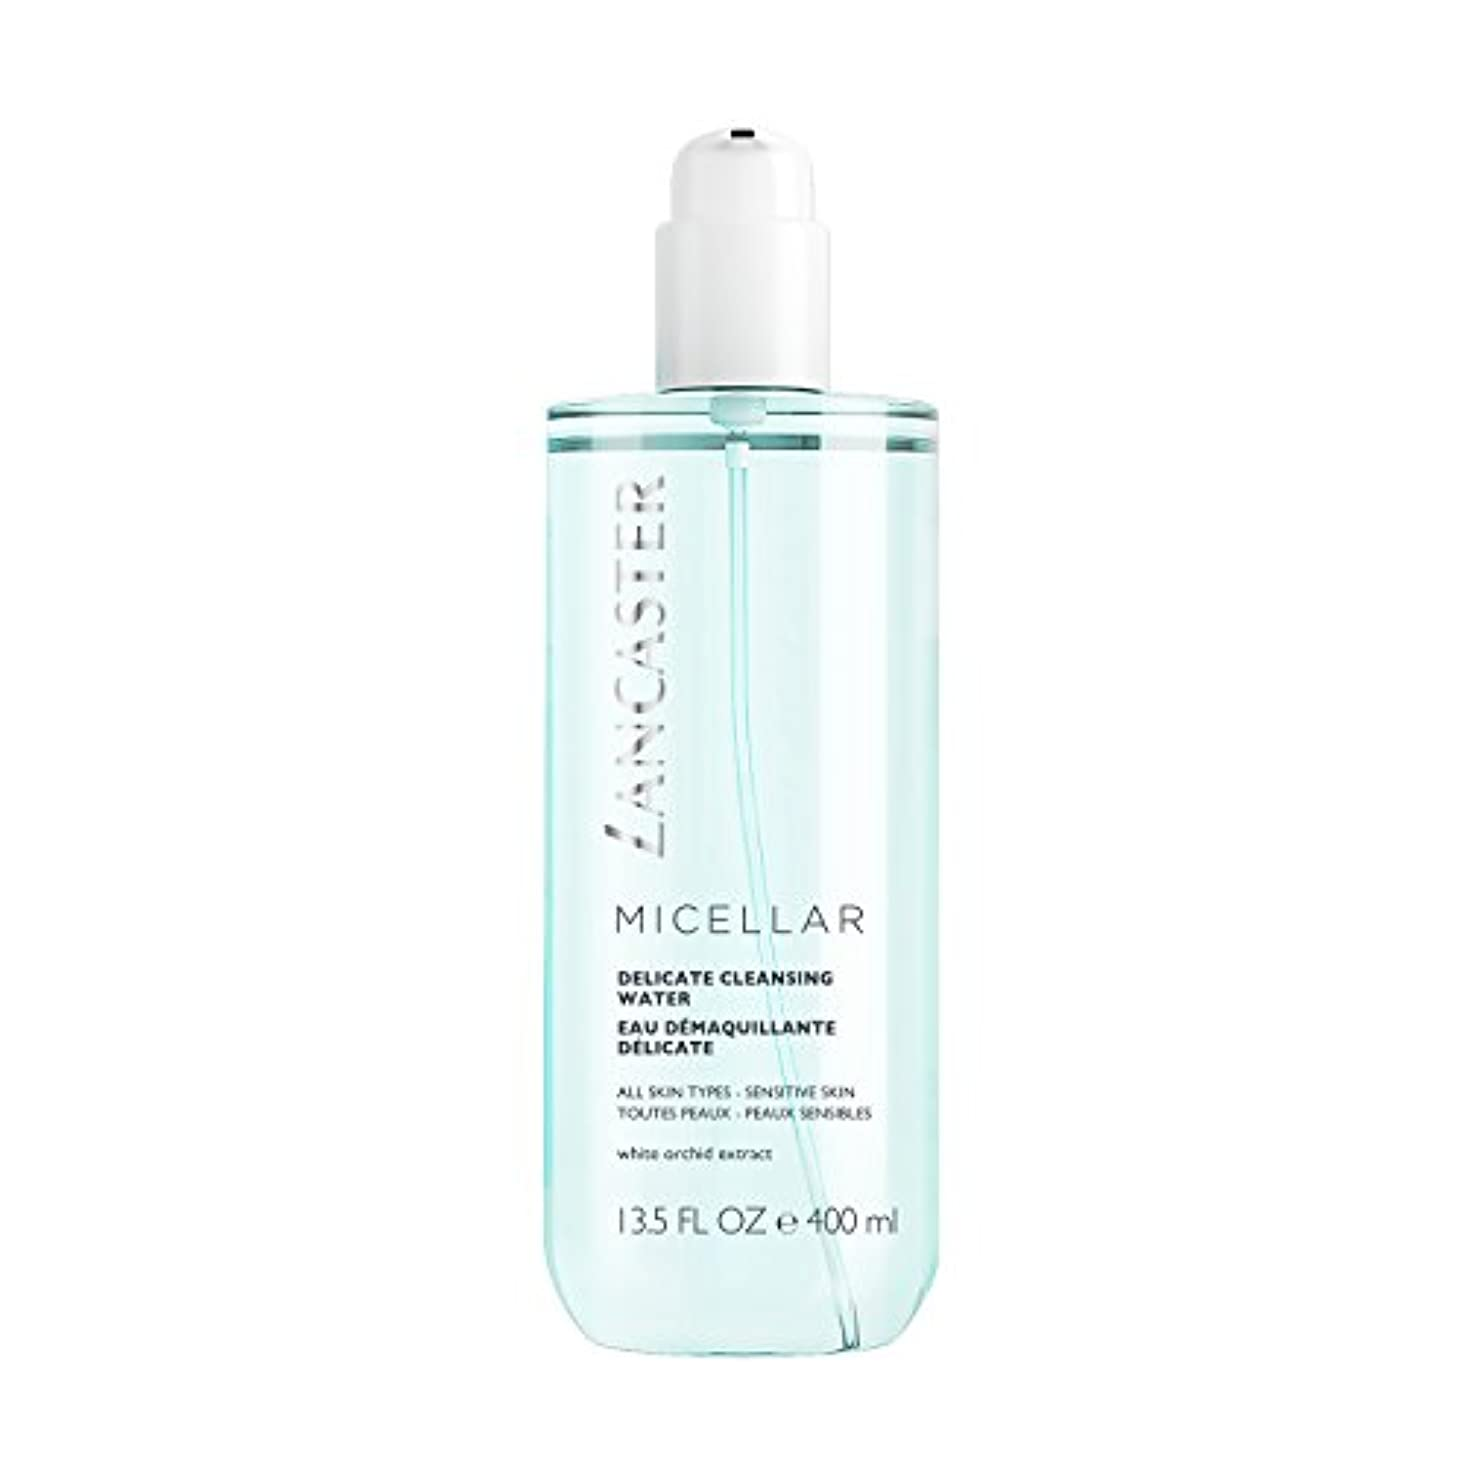 たまに濃度データベースランカスター Micellar Delicate Cleansing Water - All Skin Types, Including Sensitive Skin 400ml/13.5oz並行輸入品